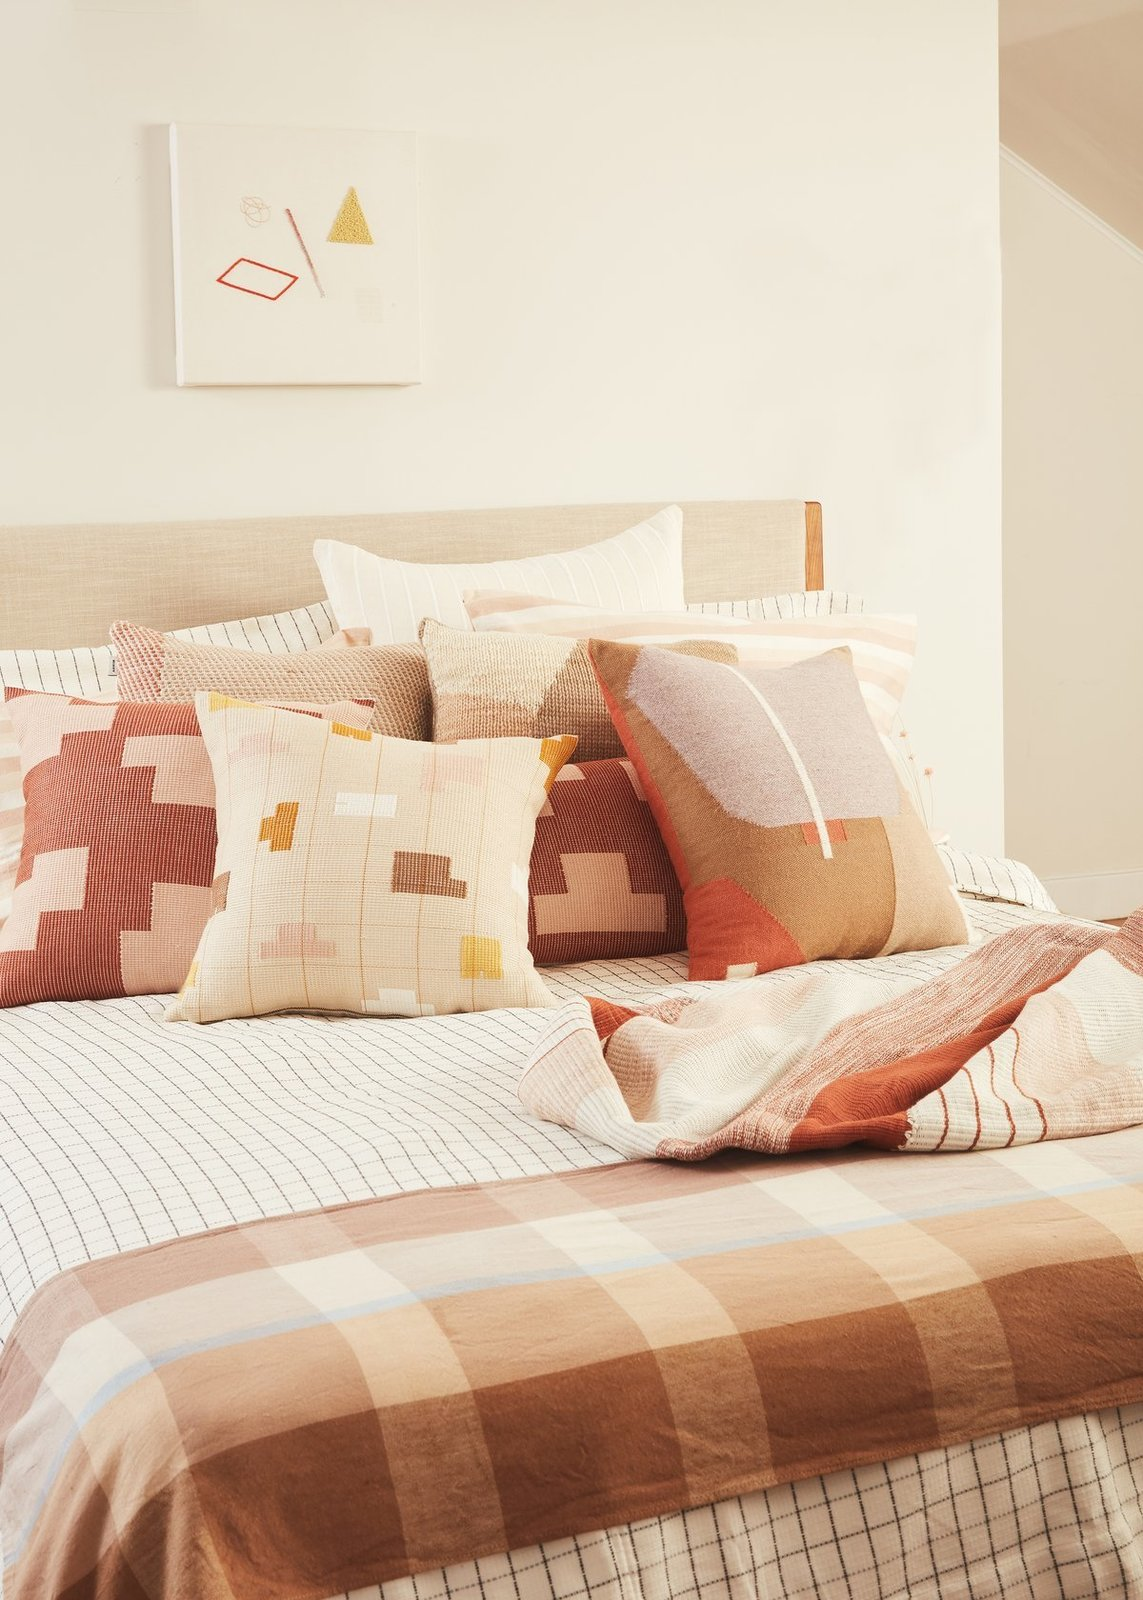 Photo 1 of 2 in MINNA Just Dropped a Delightful New Collection of Home Goods Just in Time for Spring